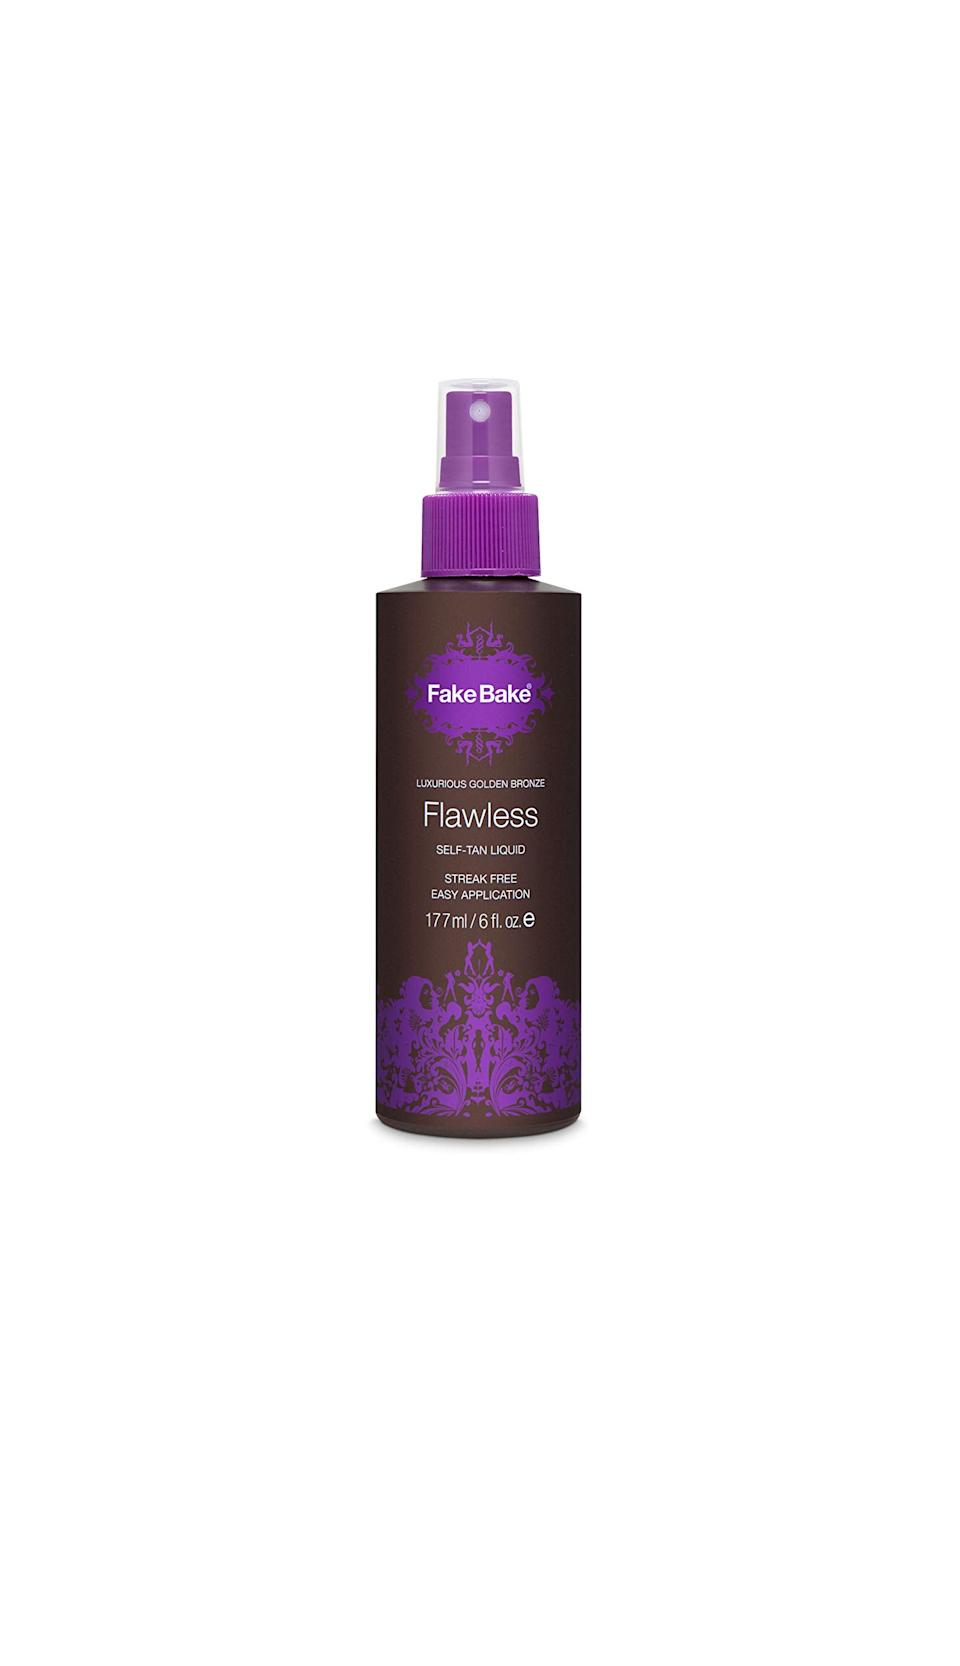 """<h3>Fake Bake Flawless Self Tan Liquid<br></h3><br><strong>The Impossible-To-Mess-Up Self Tanner</strong><br><br>Fake Bake's fluid-like texture feels like nothing on skin, but leaves behind the most realistic, transfer-proof, bronze glow.<br><br><strong>The Hype:</strong> 4.4 out of 5 stars and 609 reviews on <a href=""""https://amzn.to/39VISEt"""" rel=""""nofollow noopener"""" target=""""_blank"""" data-ylk=""""slk:Ulta Beauty"""" class=""""link rapid-noclick-resp"""">Ulta Beauty</a><br><br><strong>Reviewers Say: </strong>""""I have tried them all — some are better than others, but this is the best! Besides the color, the most important thing to me is that self tanners dry quickly and never be greasy or sticky. This is neither. By the time I'm done applying it, it's dry, and with no stickiness whatsoever. The color is very natural and I can't say anything negative about this, except that I wish I had tried it a long time ago. I'm throwing out all my other self tanners that I thought were good because this is the only one I will ever buy again!!!!!"""" — Heather, Ulta Beauty Reviewer<br><br><strong>Fake Bake</strong> Flawless Self-Tanning Liquid, $, available at <a href=""""https://go.skimresources.com/?id=30283X879131&url=https%3A%2F%2Fwww.ulta.com%2Fflawless-self-tanning-liquid-professional-mitt%3FproductId%3DxlsImpprod3850005"""" rel=""""nofollow noopener"""" target=""""_blank"""" data-ylk=""""slk:Ulta Beauty"""" class=""""link rapid-noclick-resp"""">Ulta Beauty</a>"""